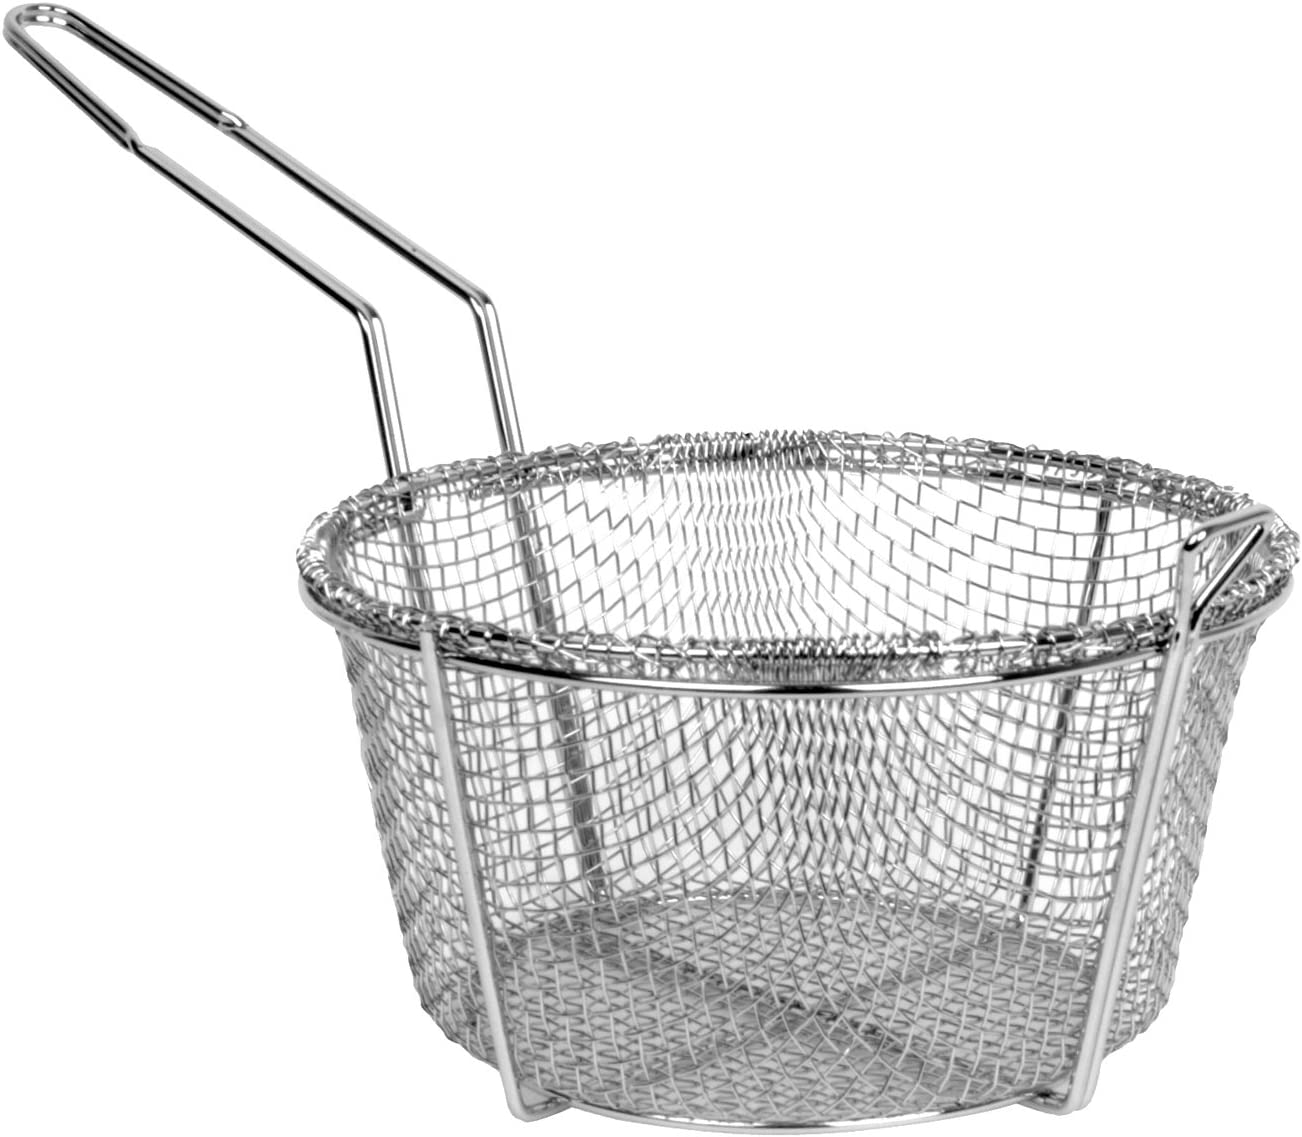 Thunder Group 14 Inch Fry Basket, Extra Large